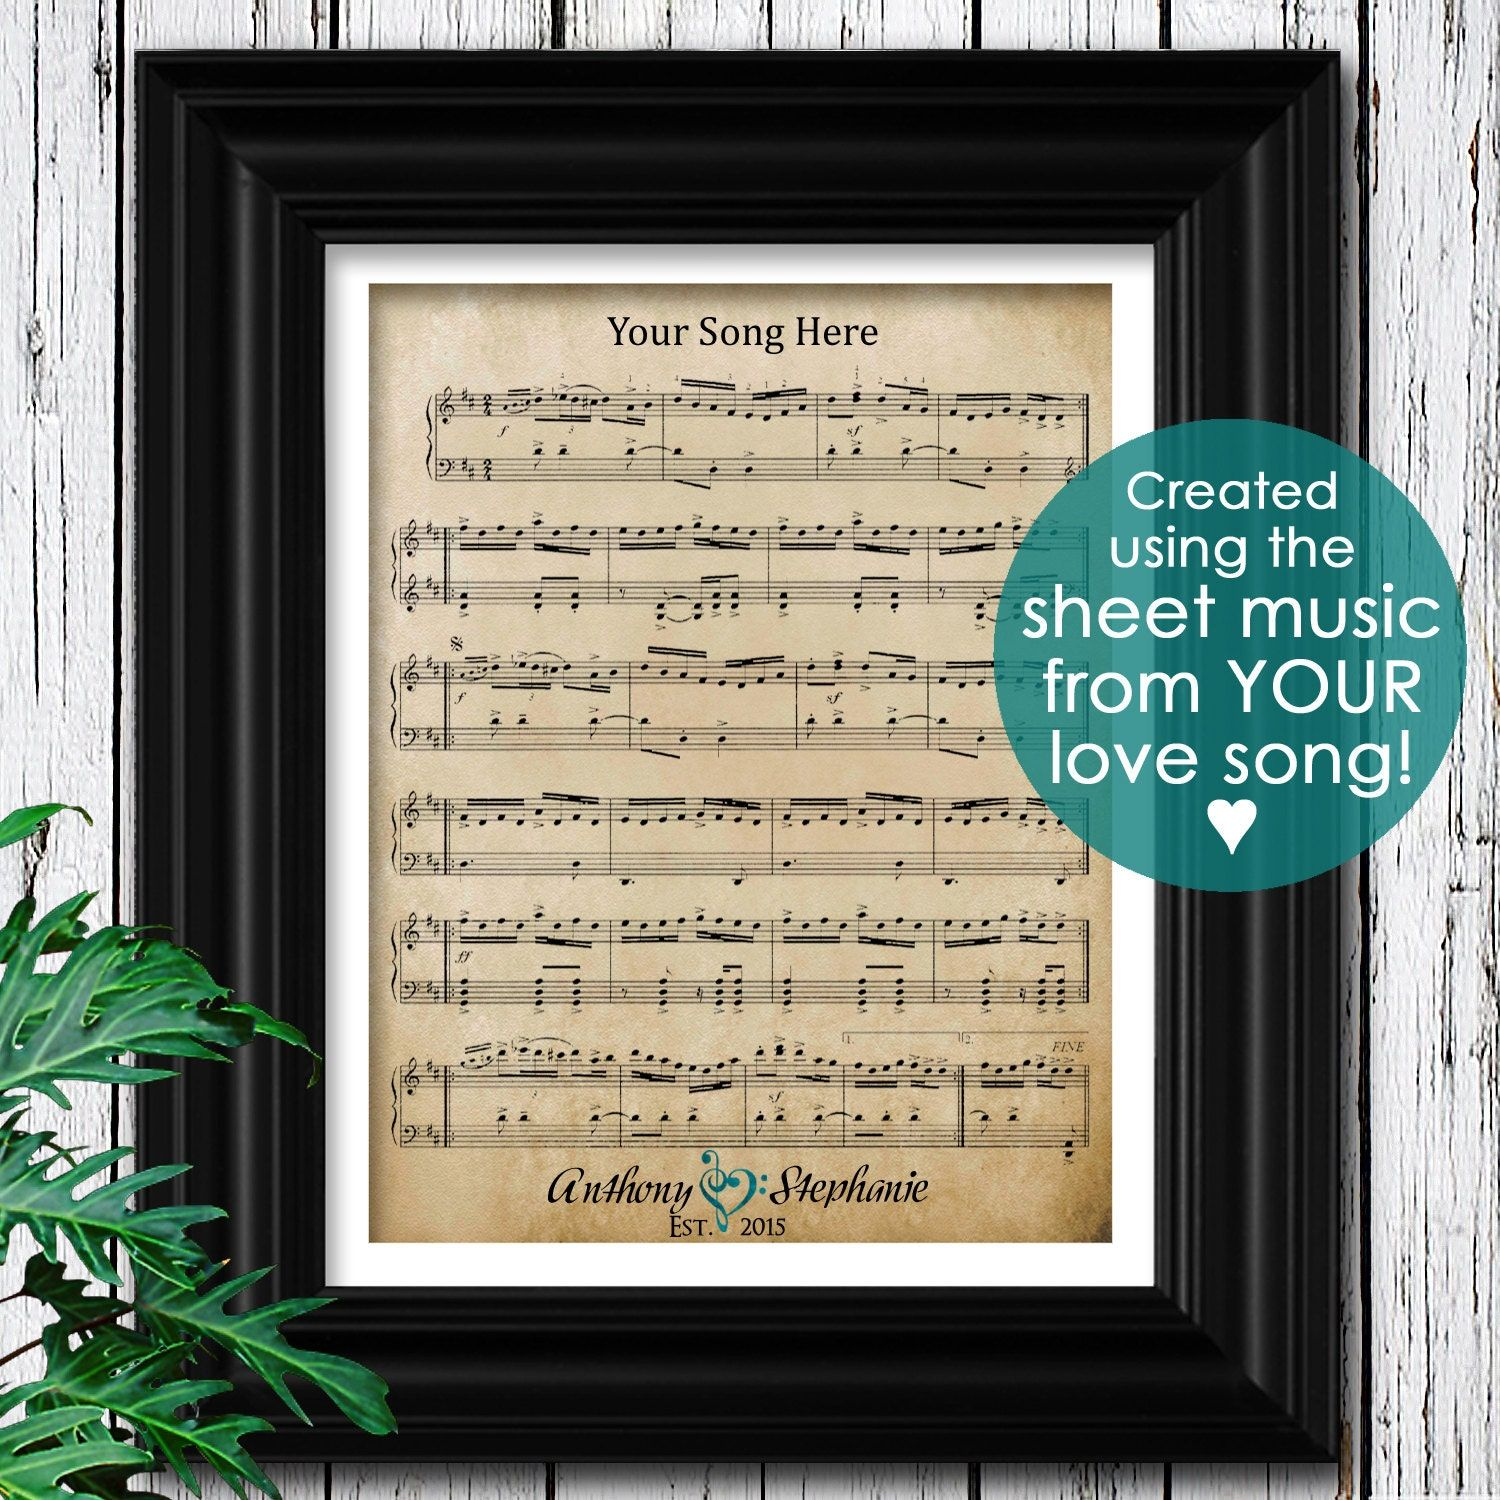 """""""Romantic Gift for Him Personalized Sheet Music with Song Lyrics to Your Wedding Song or Love Song. Chorus & Lyrics included. A Unique Gift Idea for Husband or Boyfriend, Handmade for a truly unique gift for him! SIZES AVAILABLE AT CHECKOUT - Digital Download (QUICK TURNAROUND! Artwork printed/framed locally fast! Please MESSAGE with date needed by) - 8x10\"""" Print Only - 8.5x11\"""" Print Only - 11x14\"""" Print Only - 12x18\"""" Print Only - Small Framed - 7x9\"""" Print with 8x10\"""" Frame - Medium Fram"""